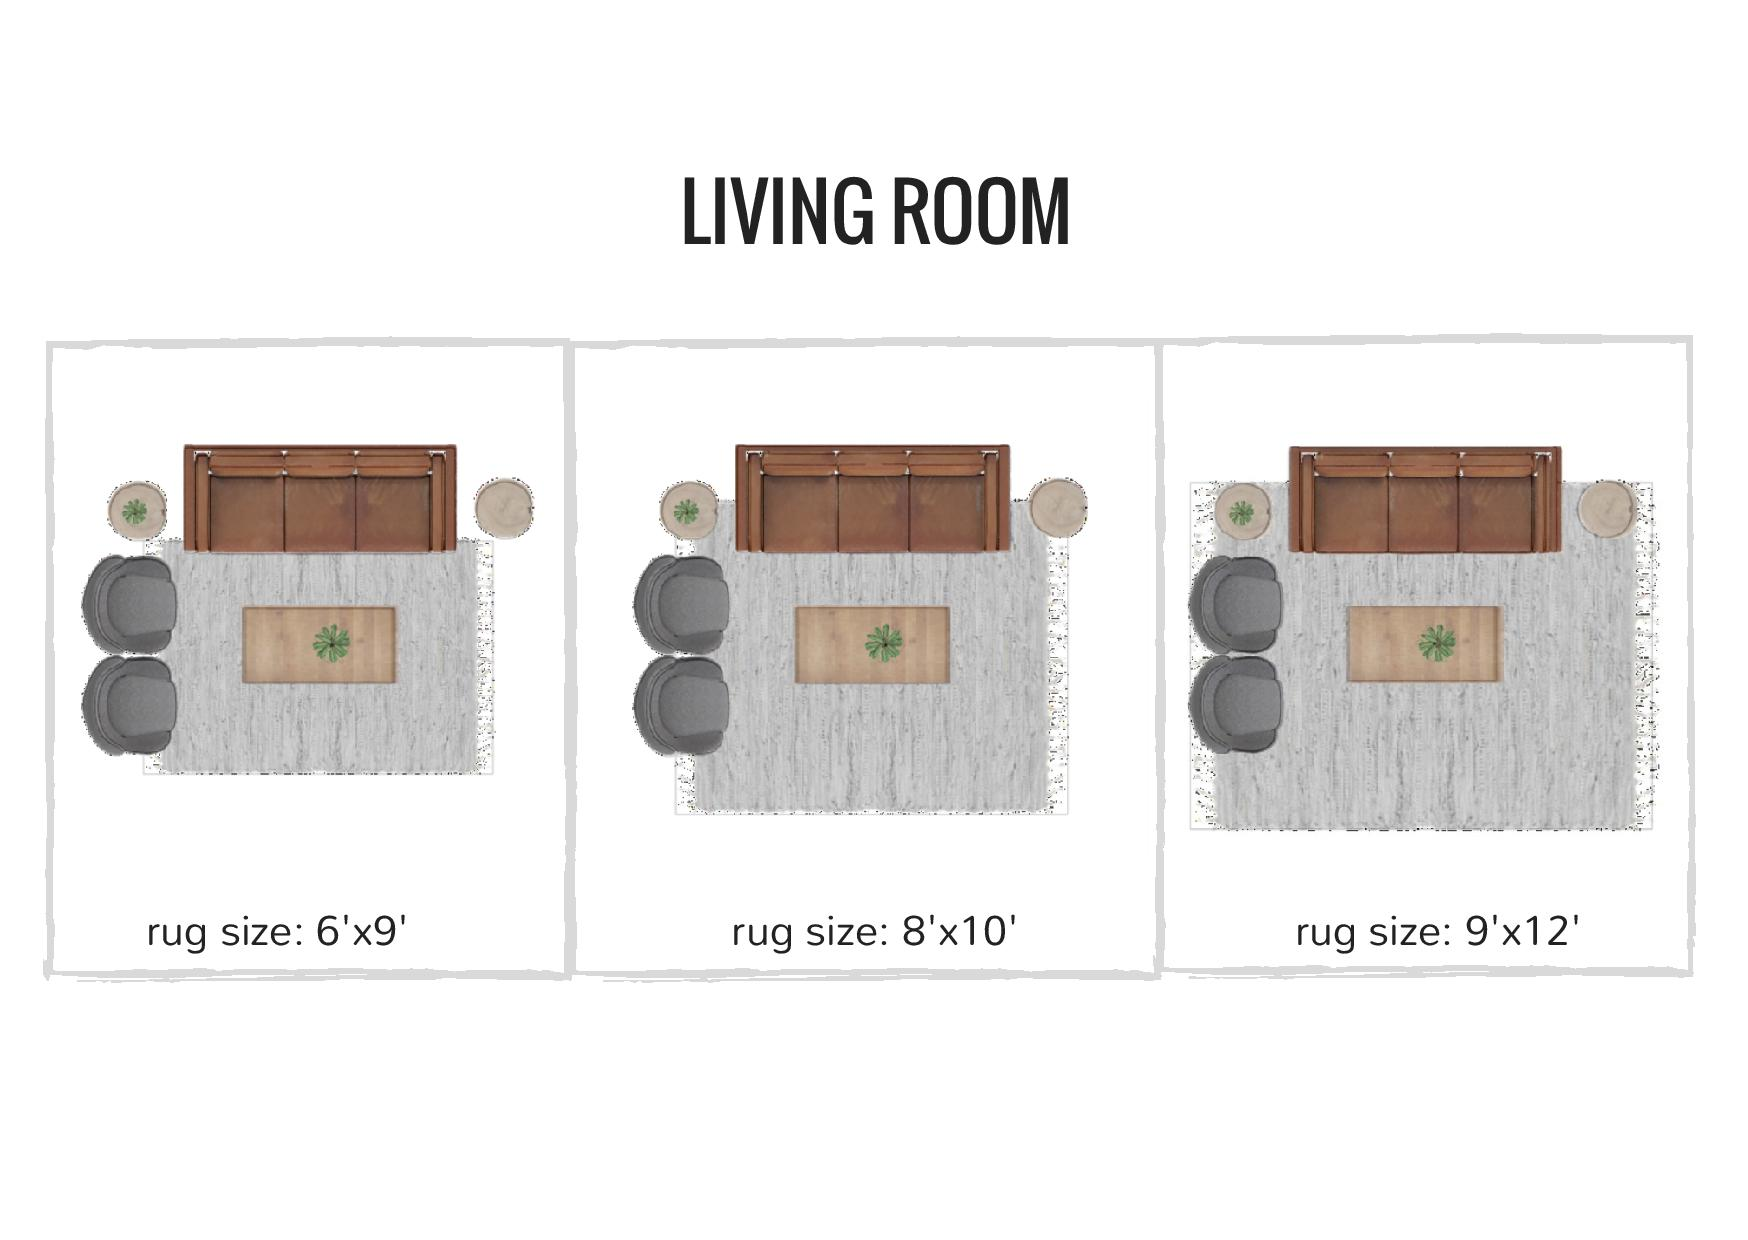 rug sizing and placement guide - what size rug do you need for your living room